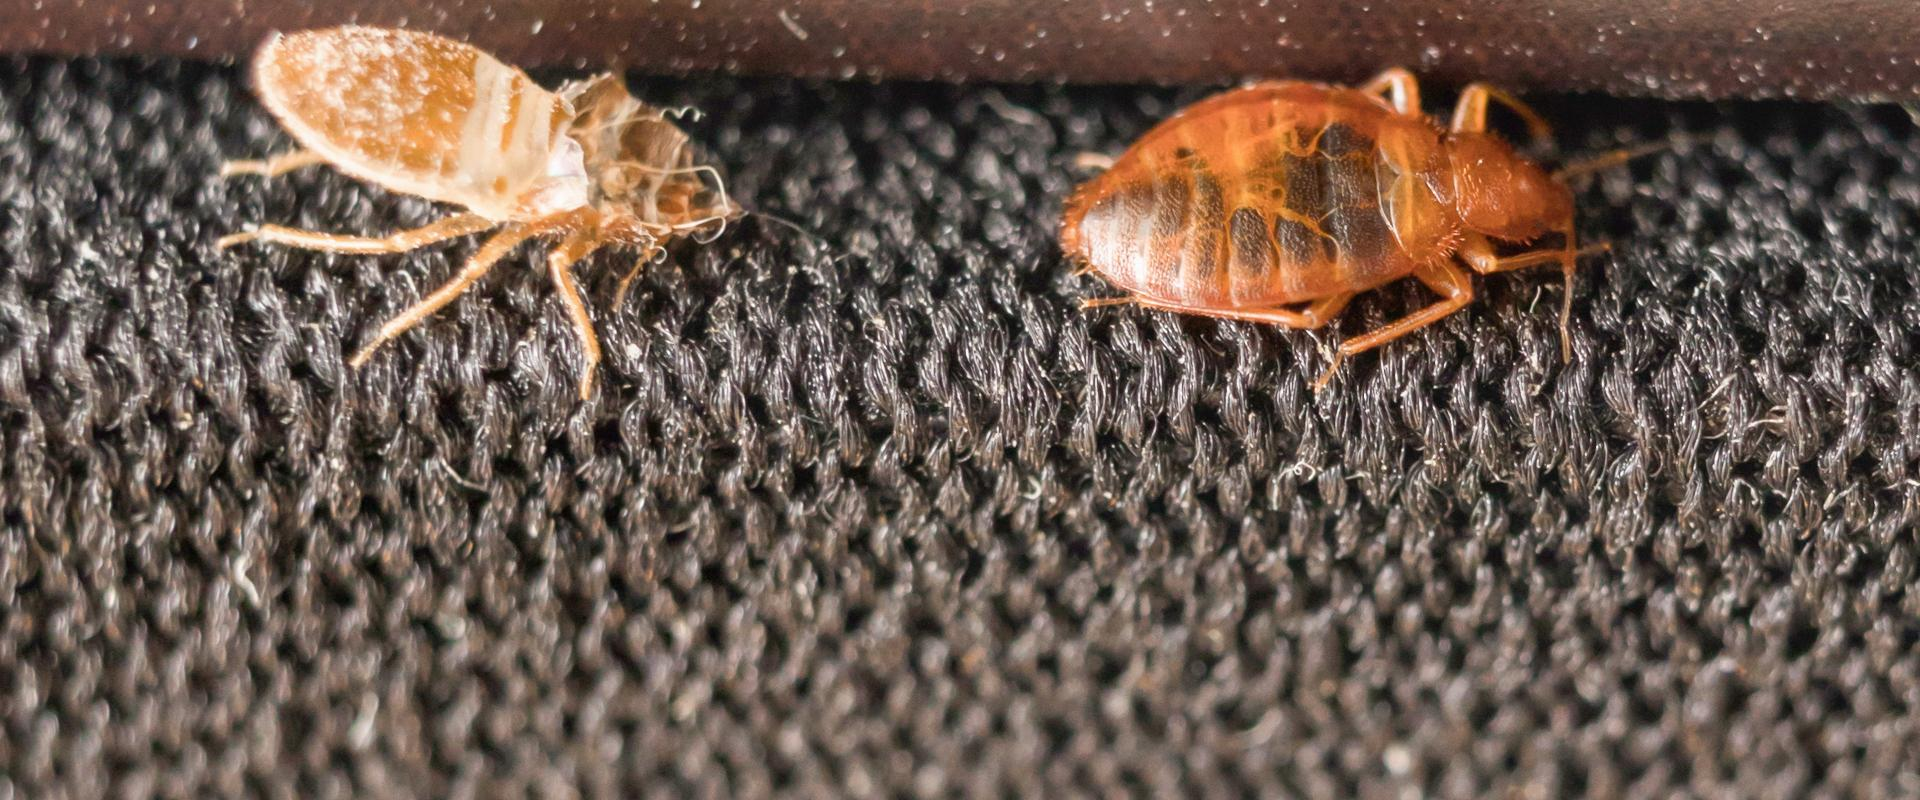 two bed bugs crawling on carpeting inside a home in whitehouse texas